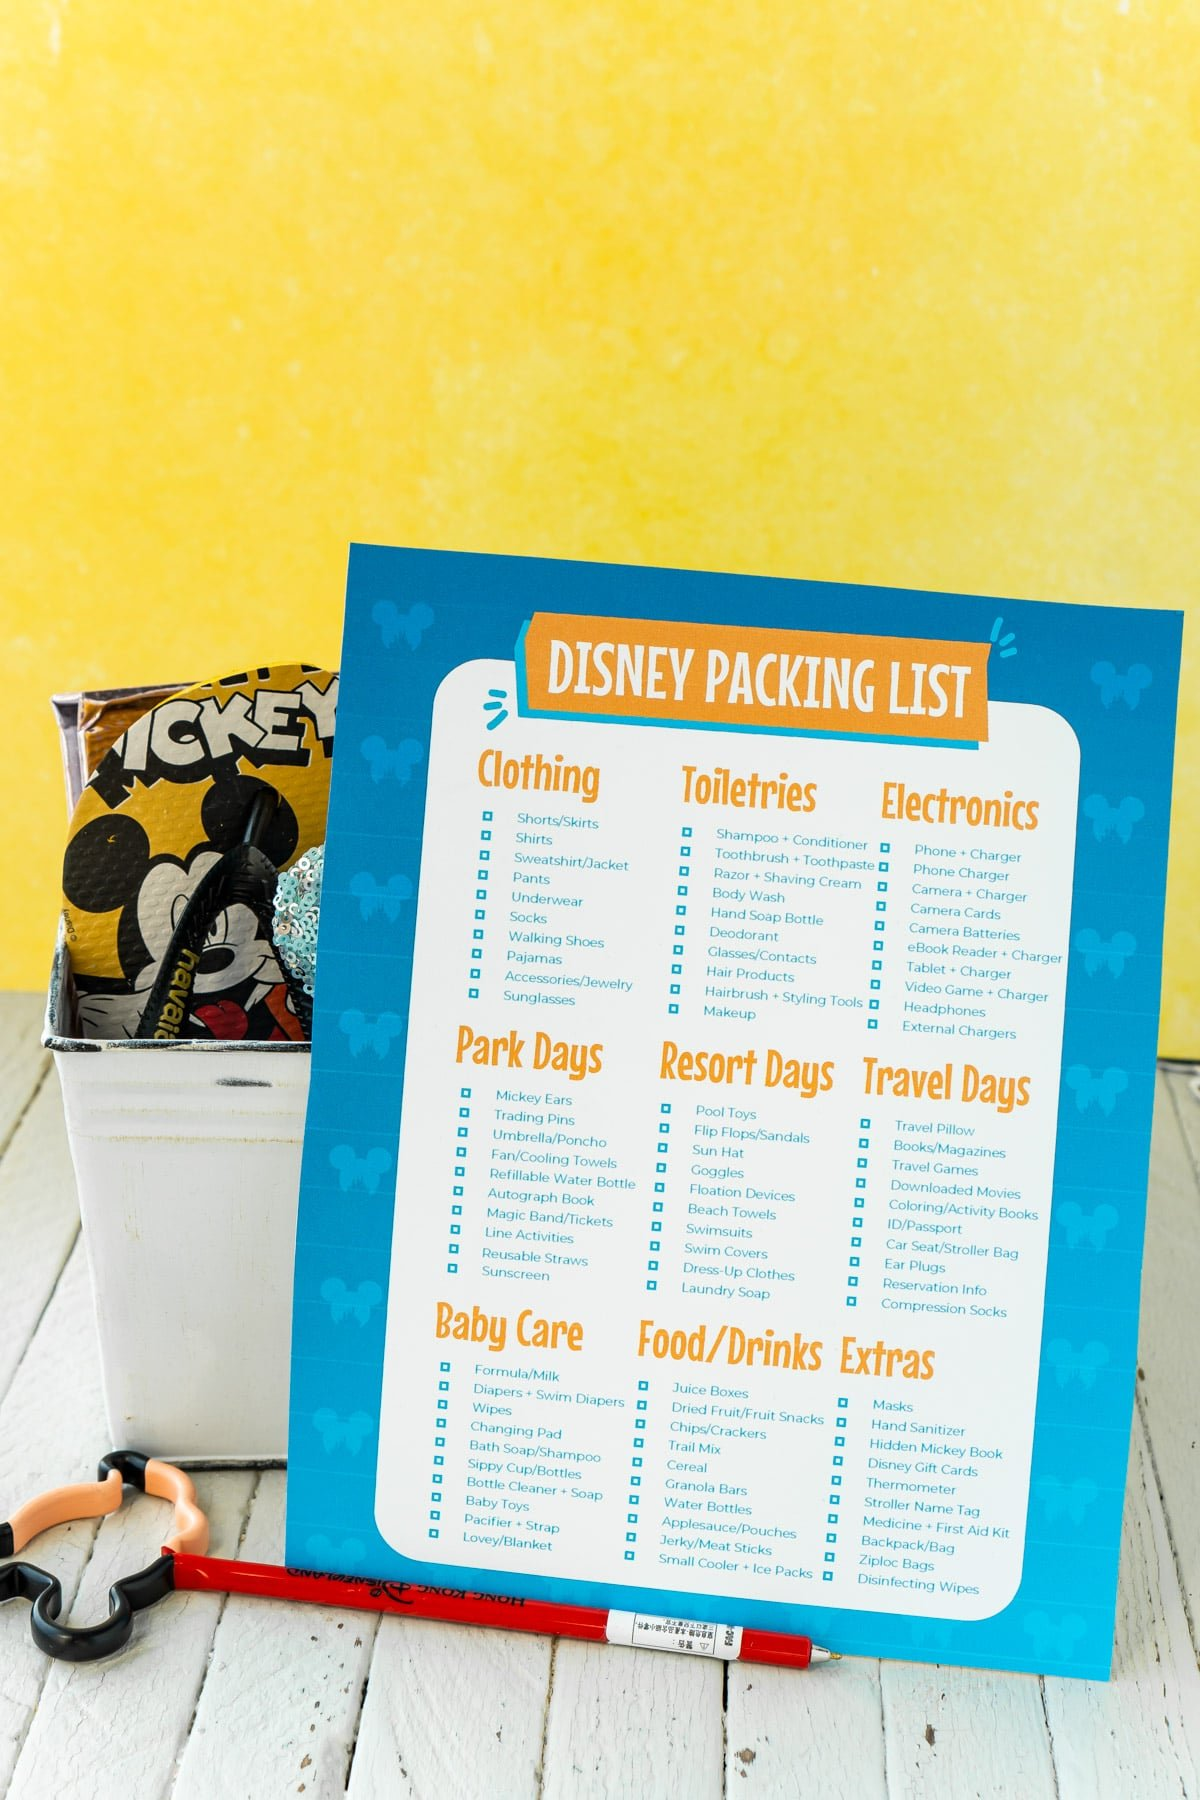 Disney packing list in front of a bucket full of Disney items with a yellow background